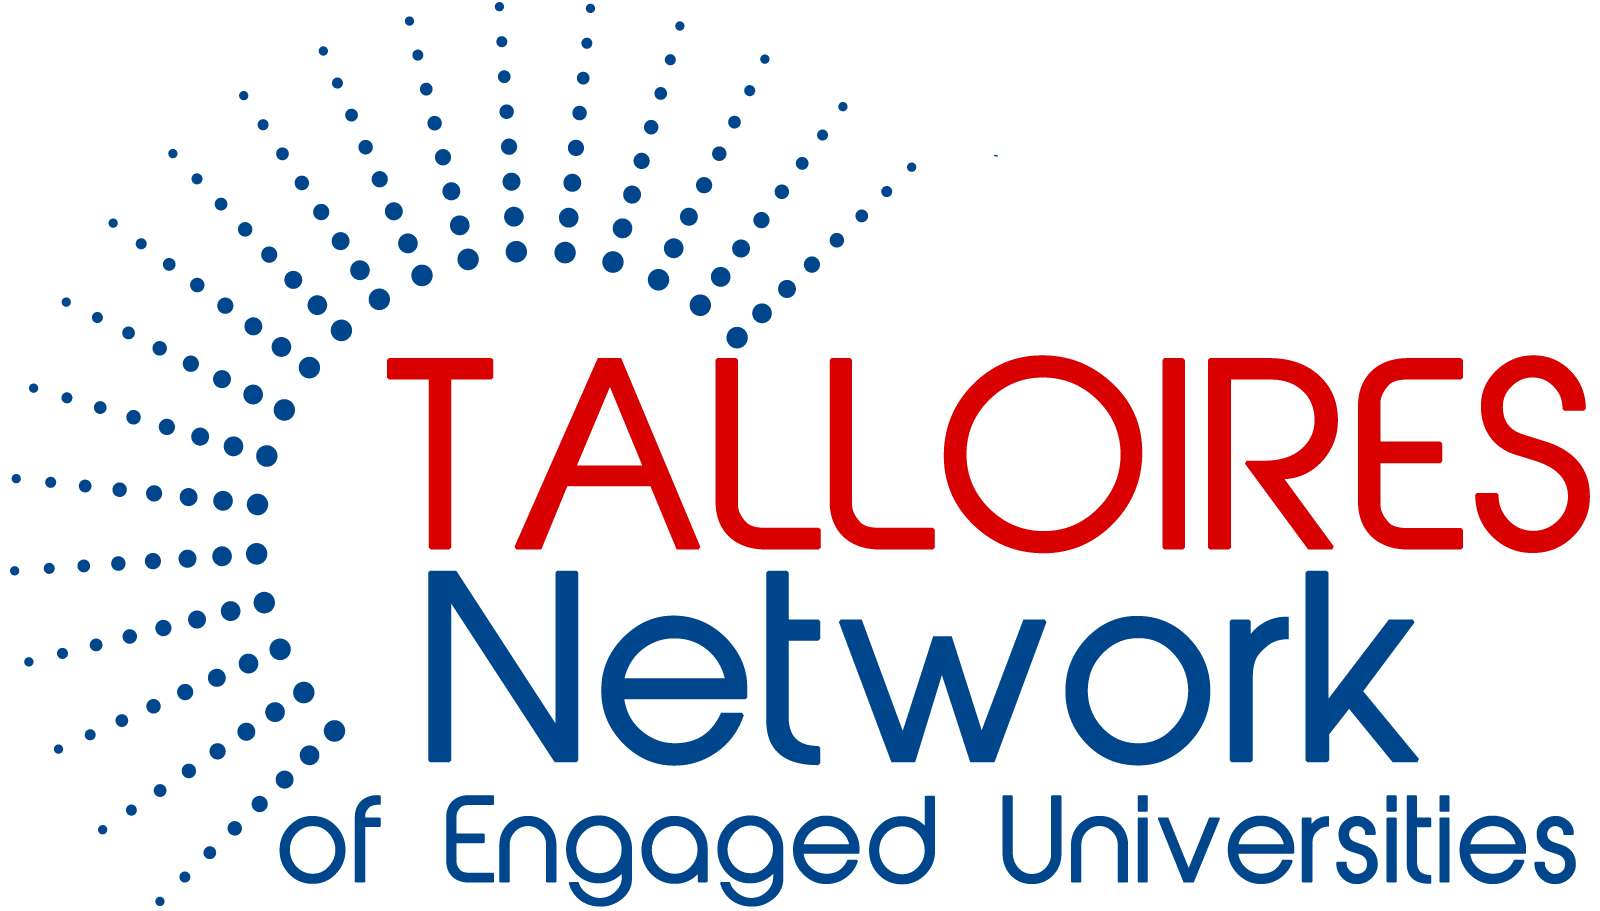 Updated Messaging for the Talloires Network of Engaged Universities